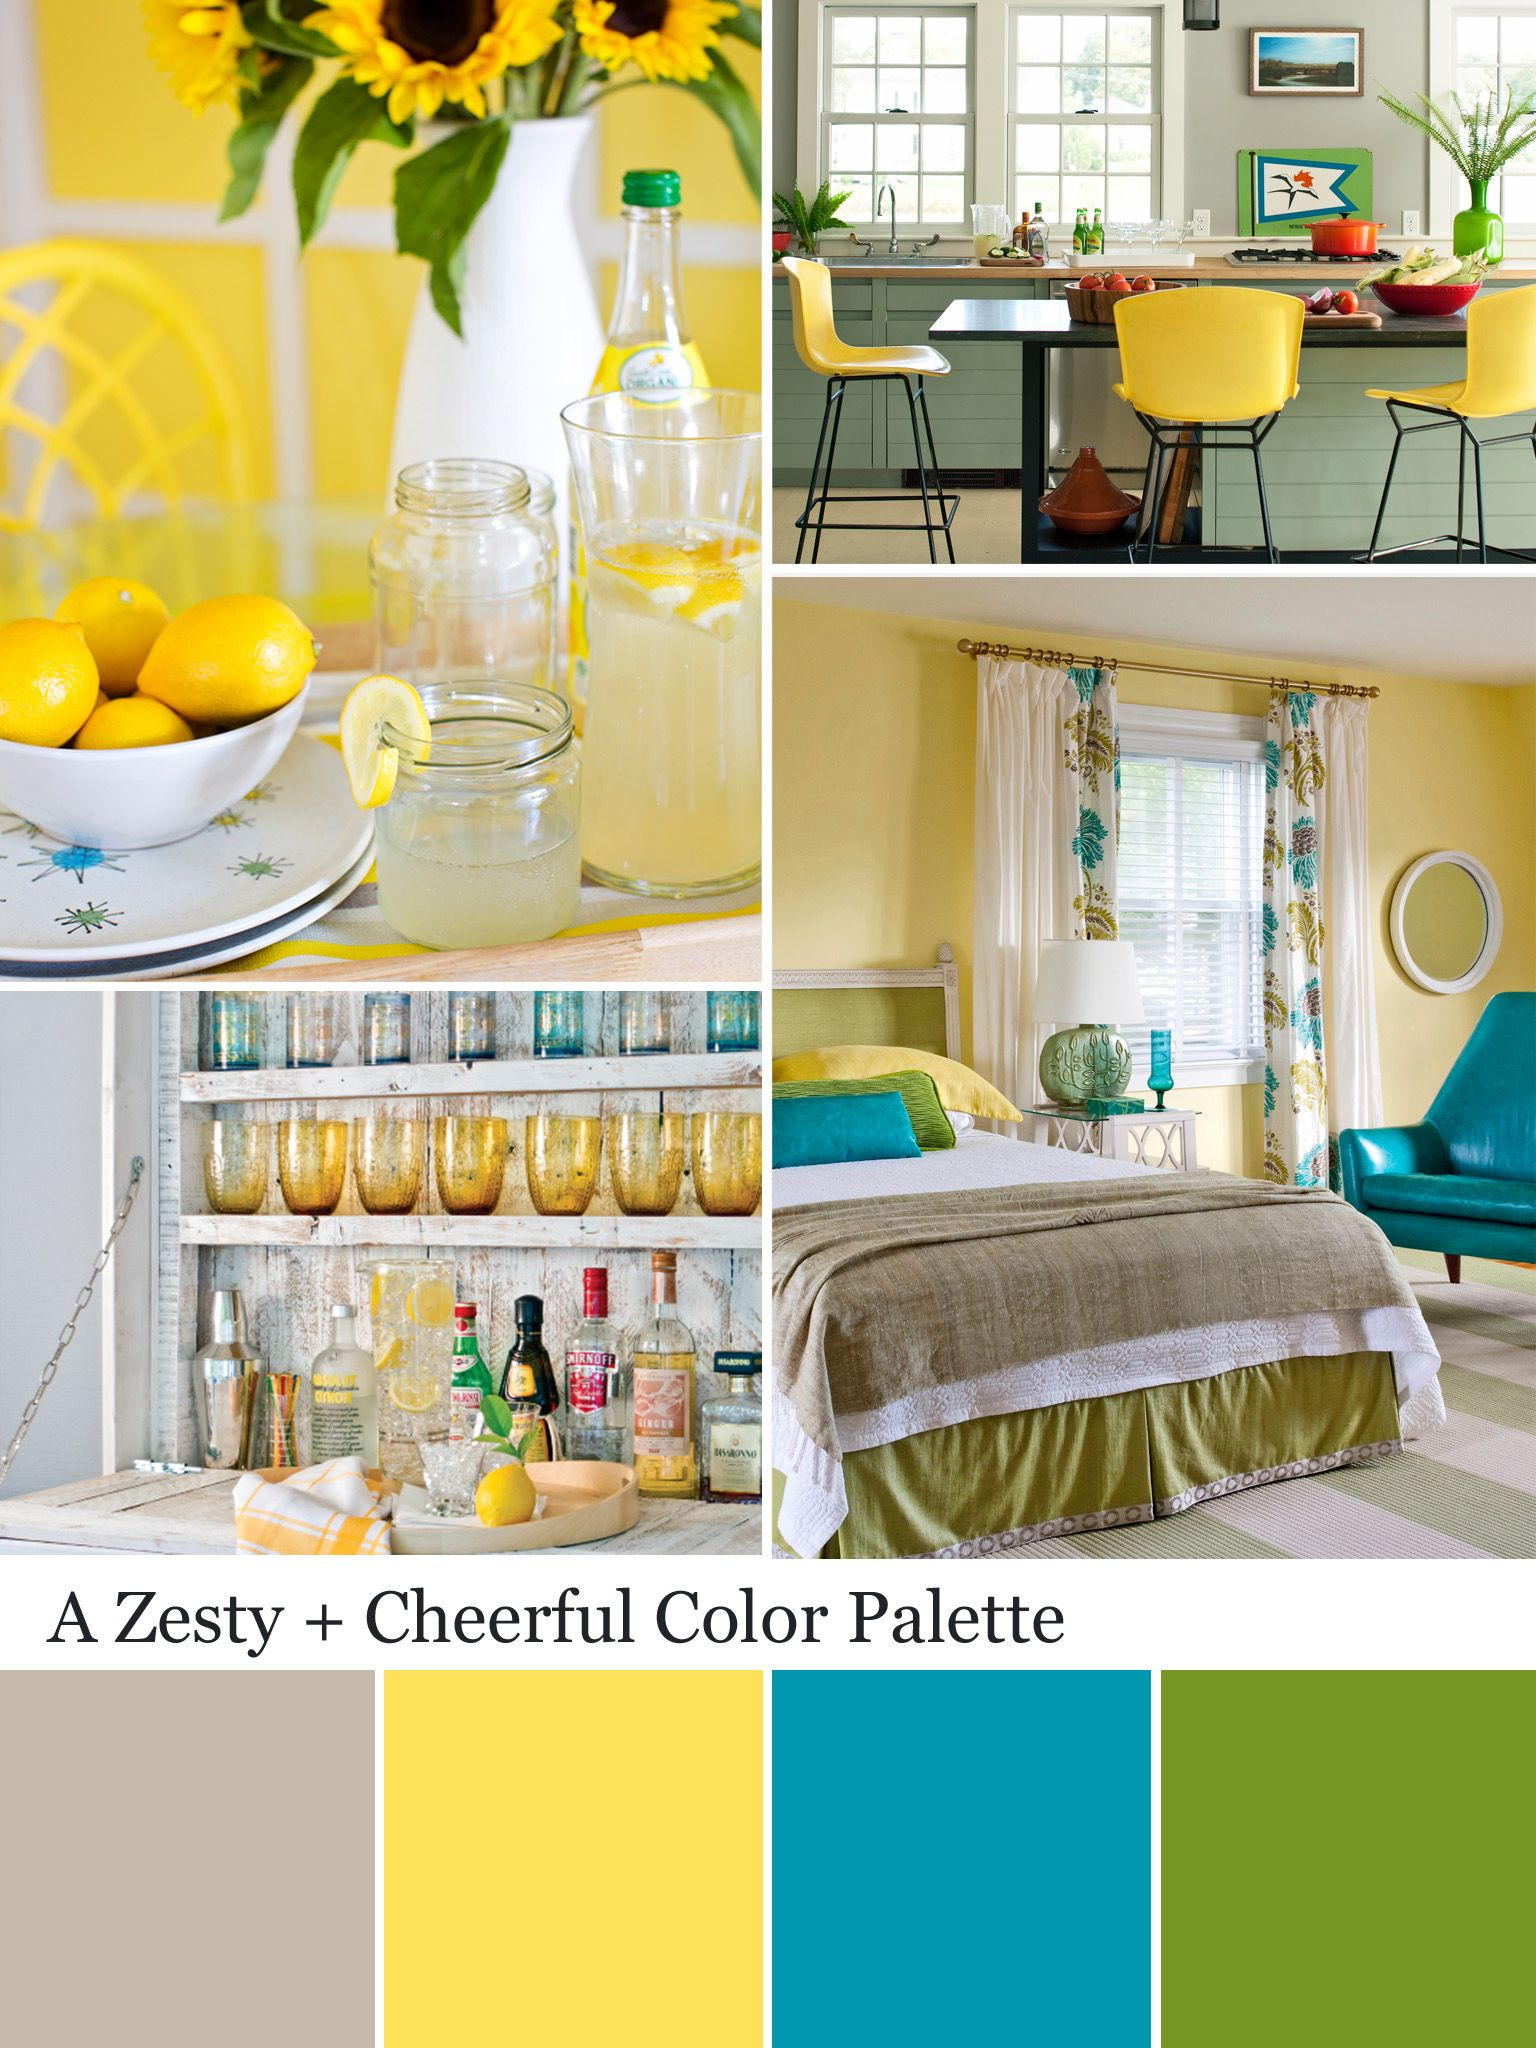 Navy yellow bedrooms house paint interior and yellow kitchen walls - Yellow Color Palette Yellow Color Schemes